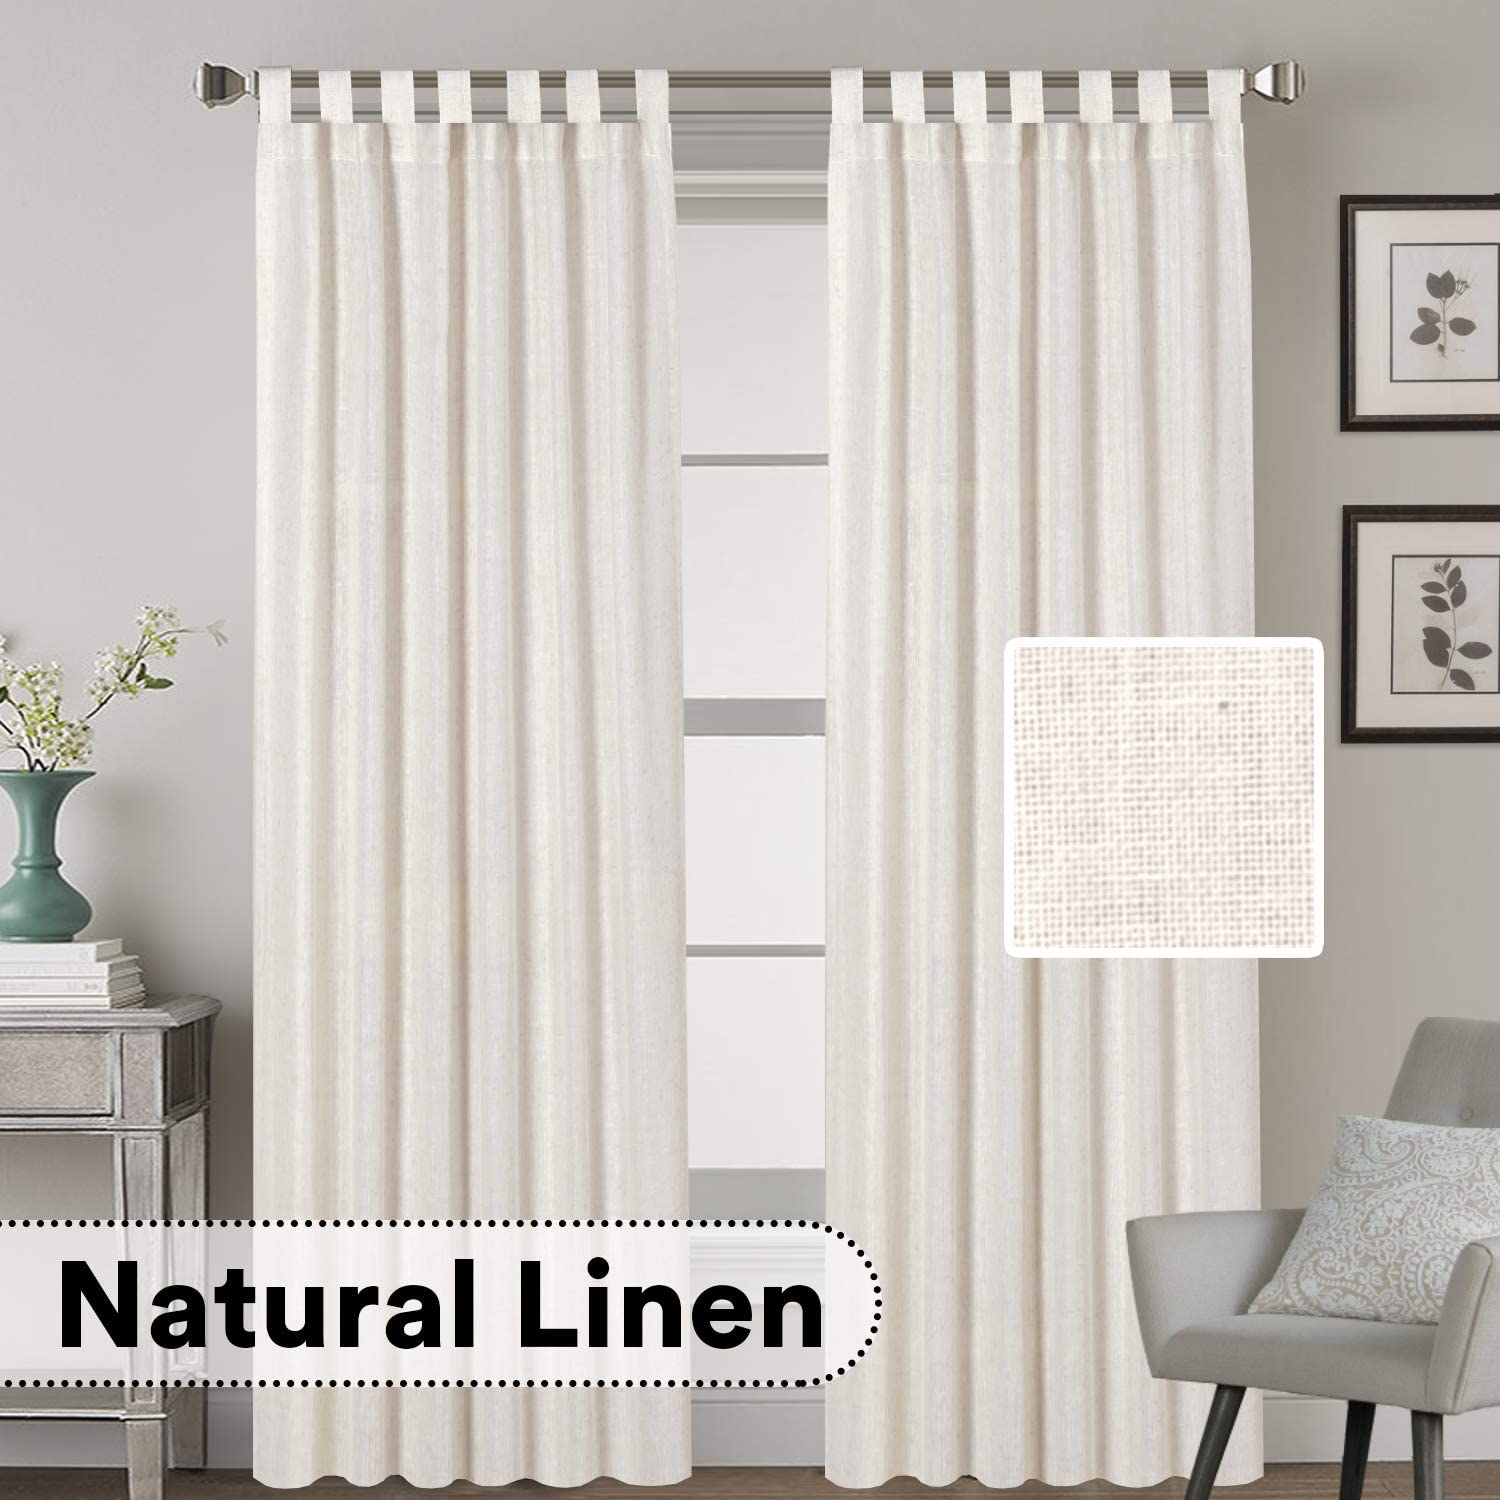 Shop H.VERSAILTEX Tab Top Natural Linen Blended Airy Curtains from Amazon on Openhaus